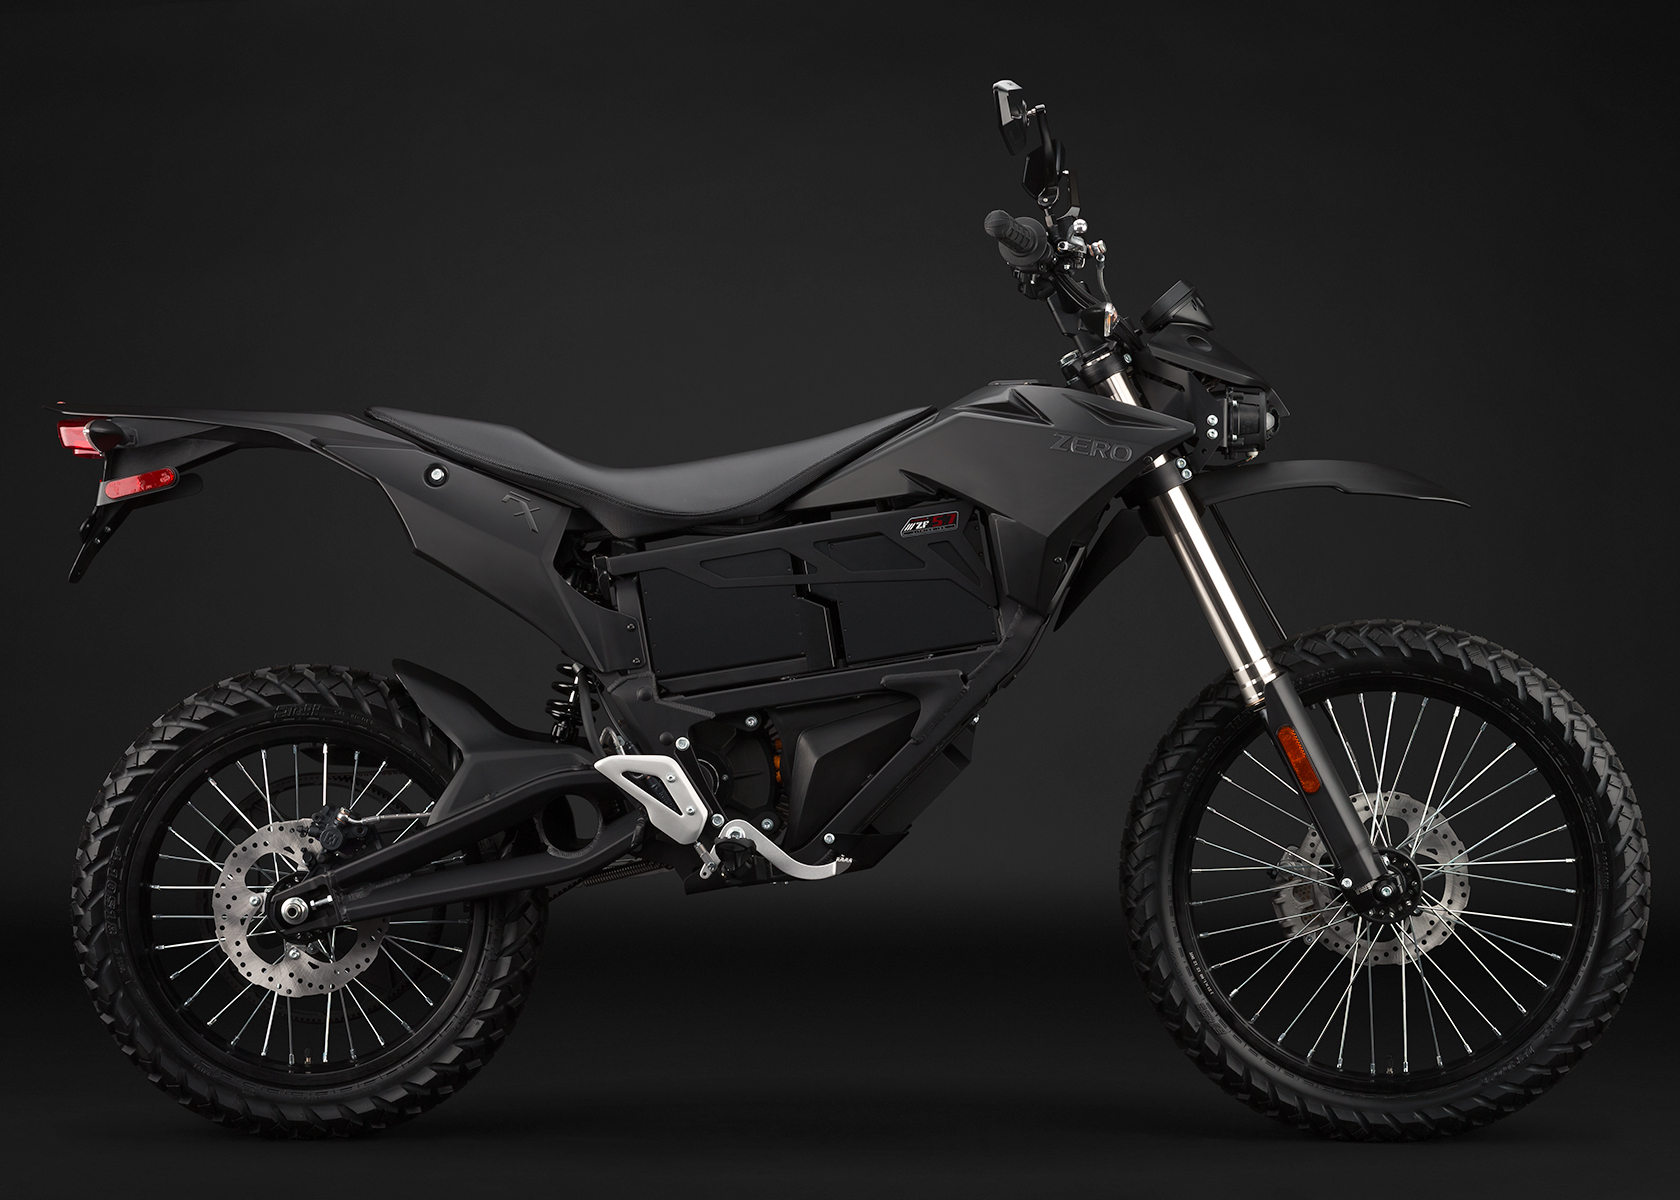 2014 Zero FX Electric Motorcycle: Black Profile Right